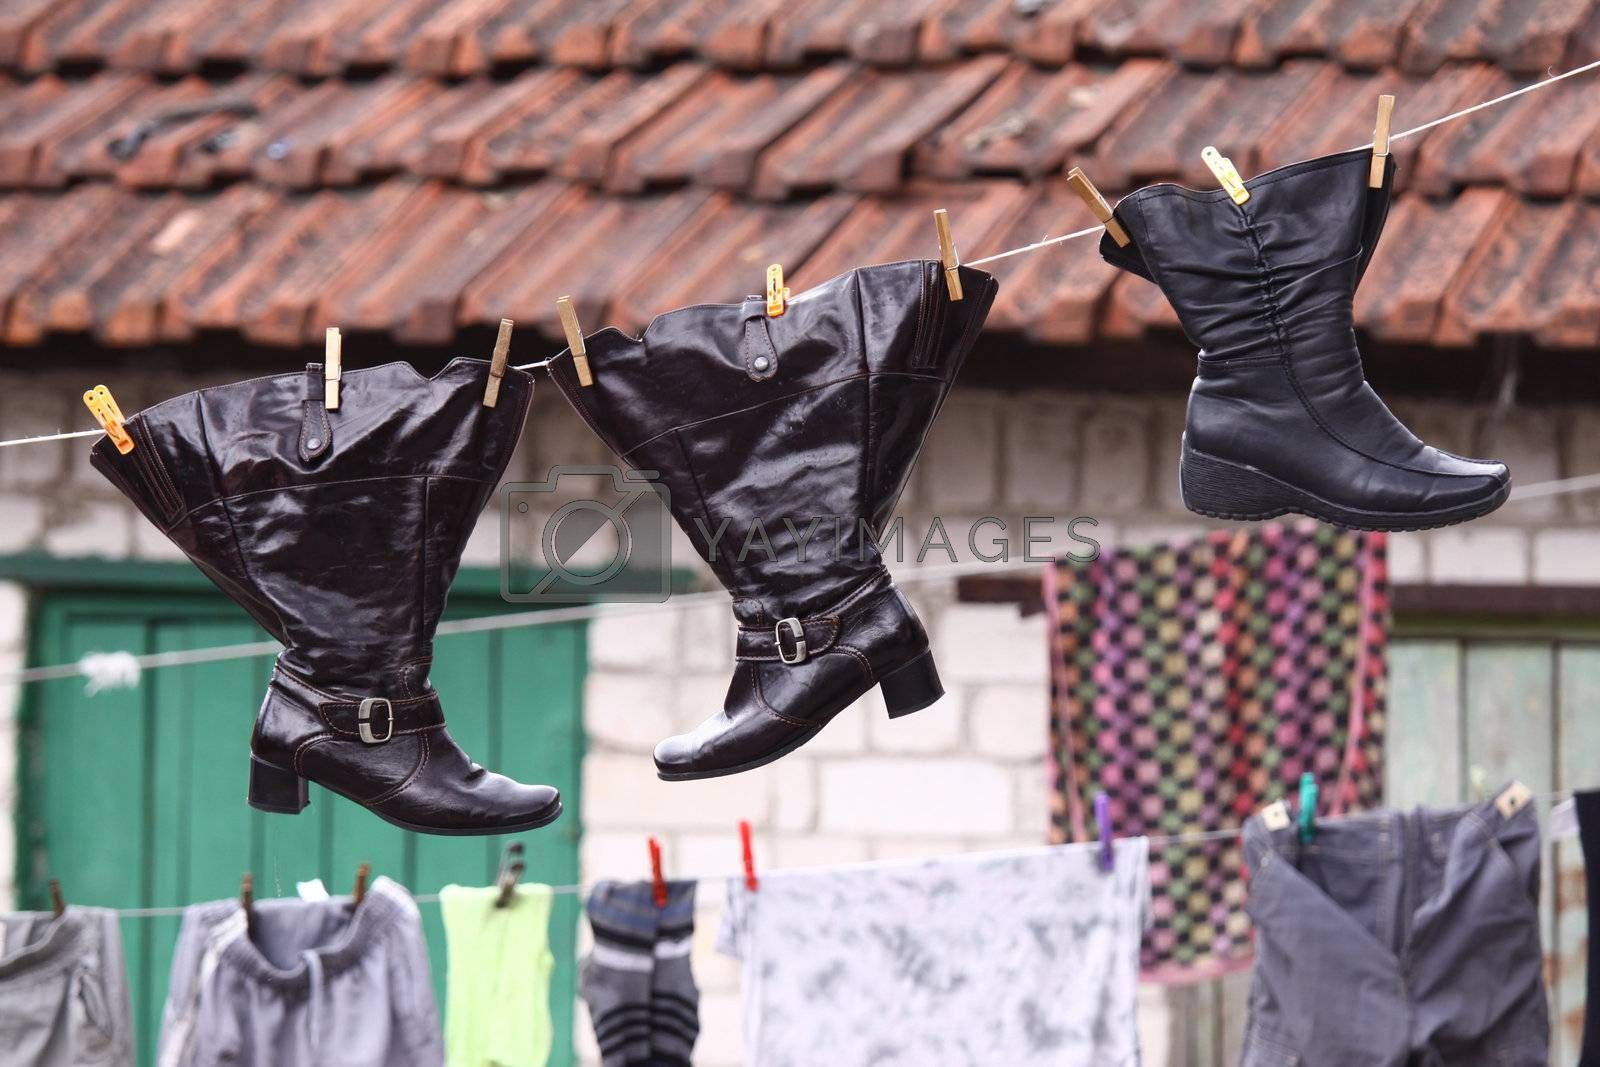 Wet shoes hanging on the clothesline along with other laundry